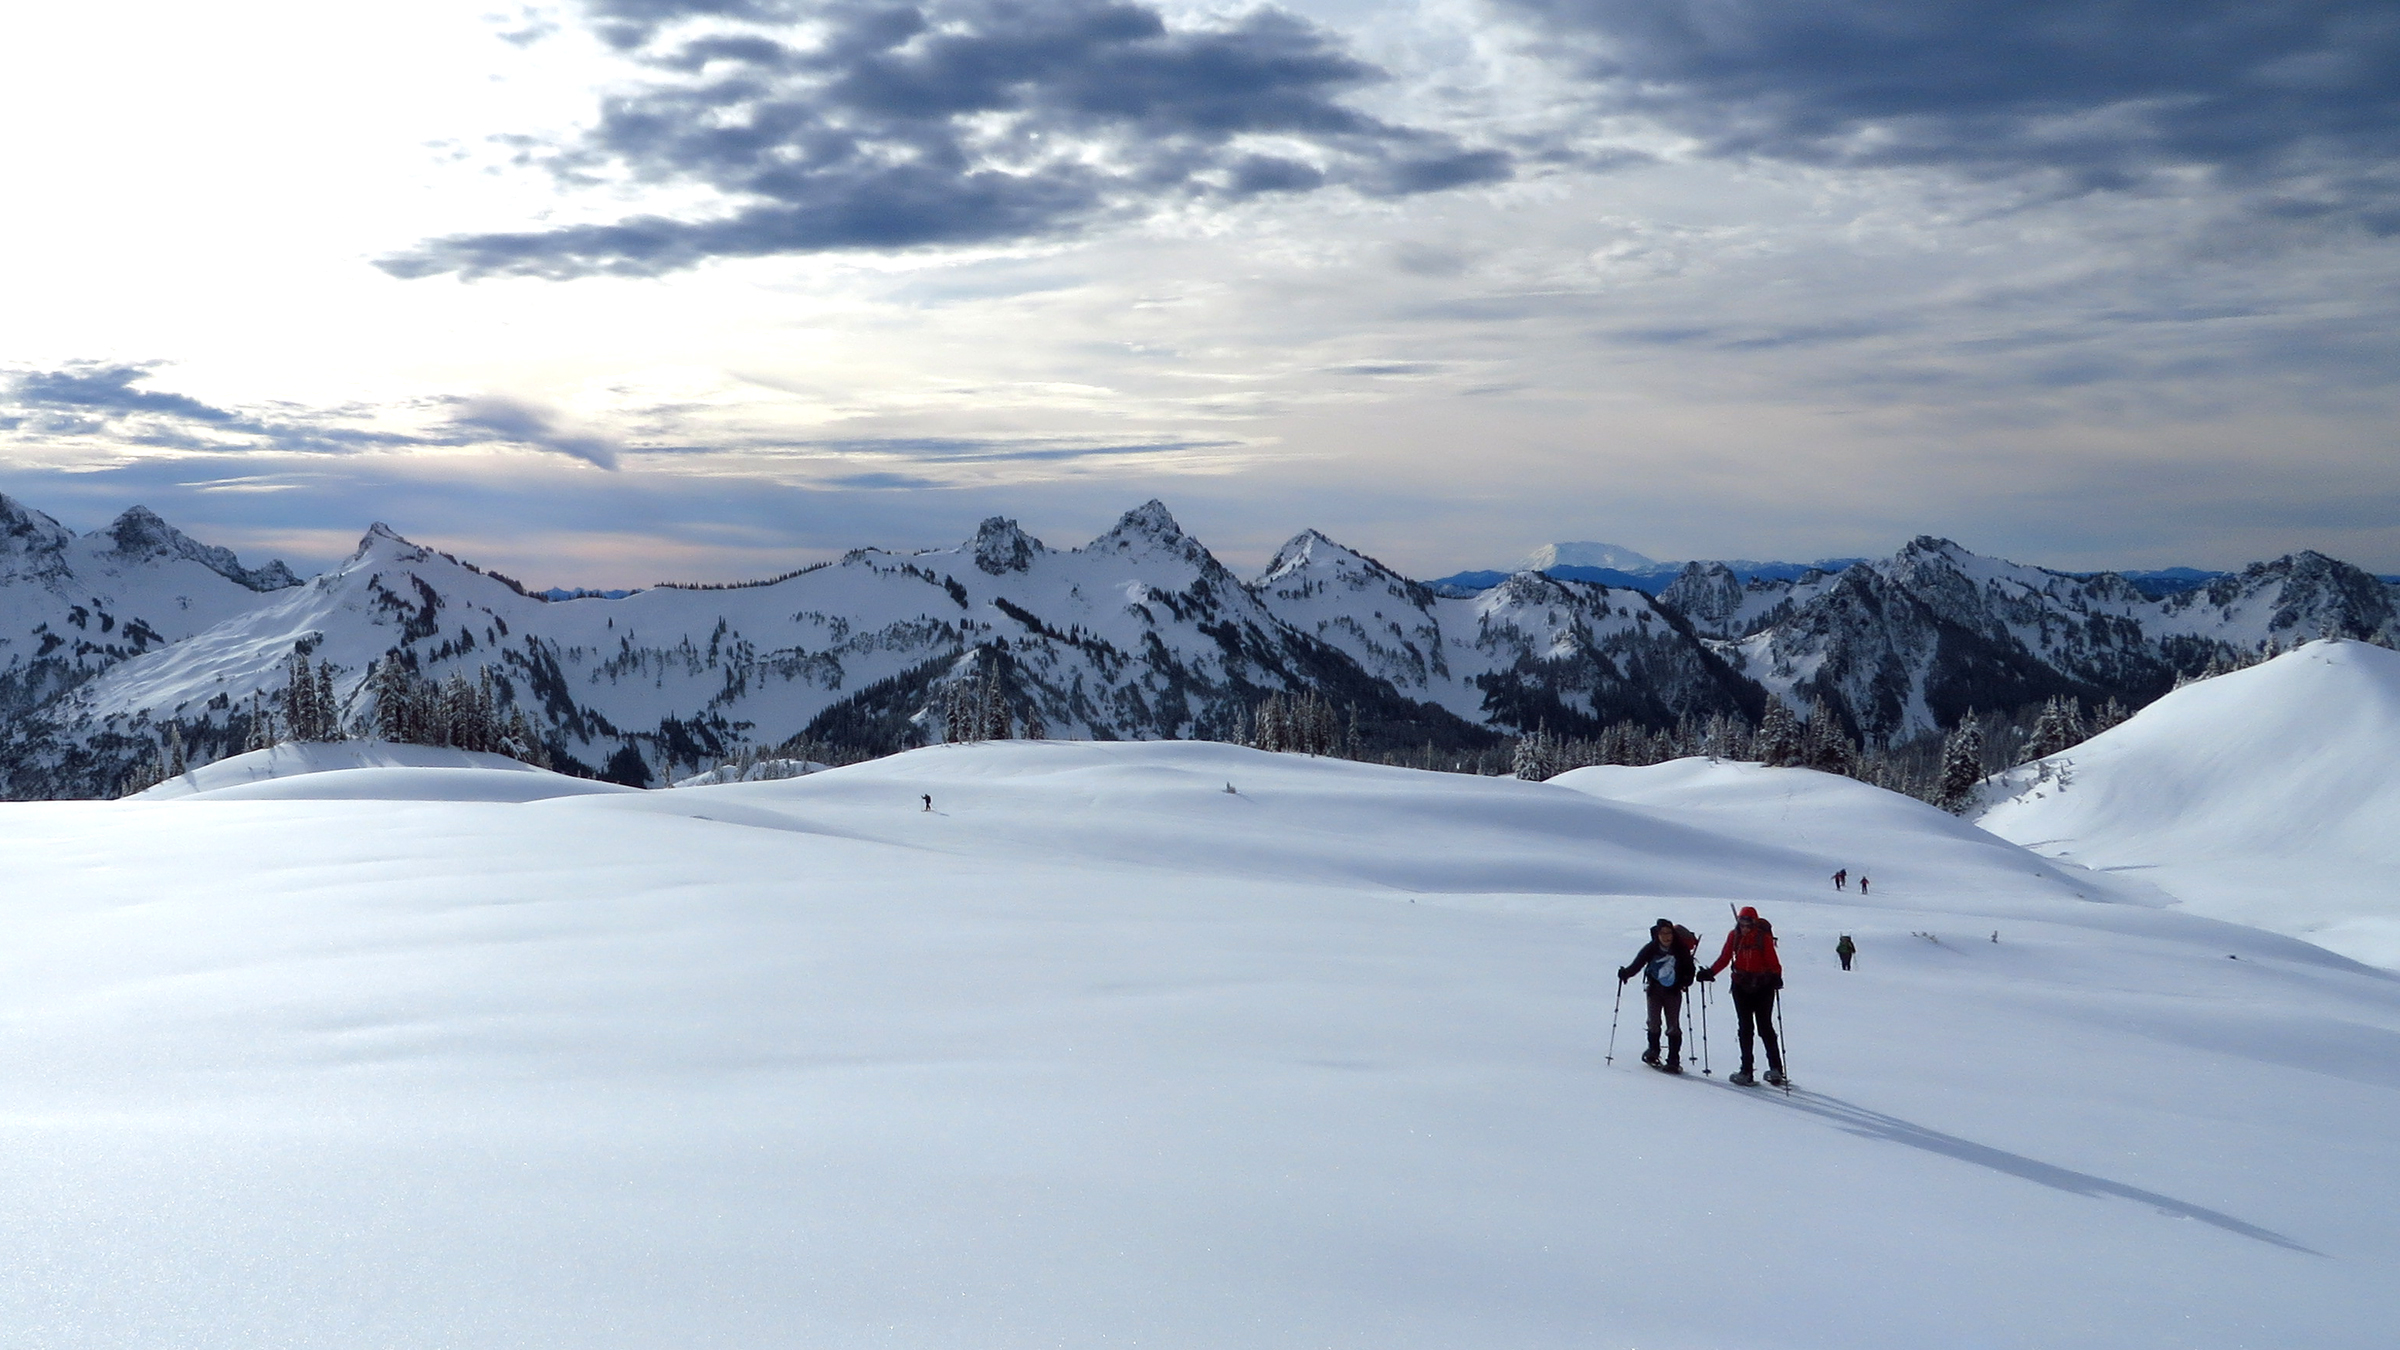 Mt. Rainier National Park is ideal for snowshoers or anyone looking for a great view of the Tatoosh range.